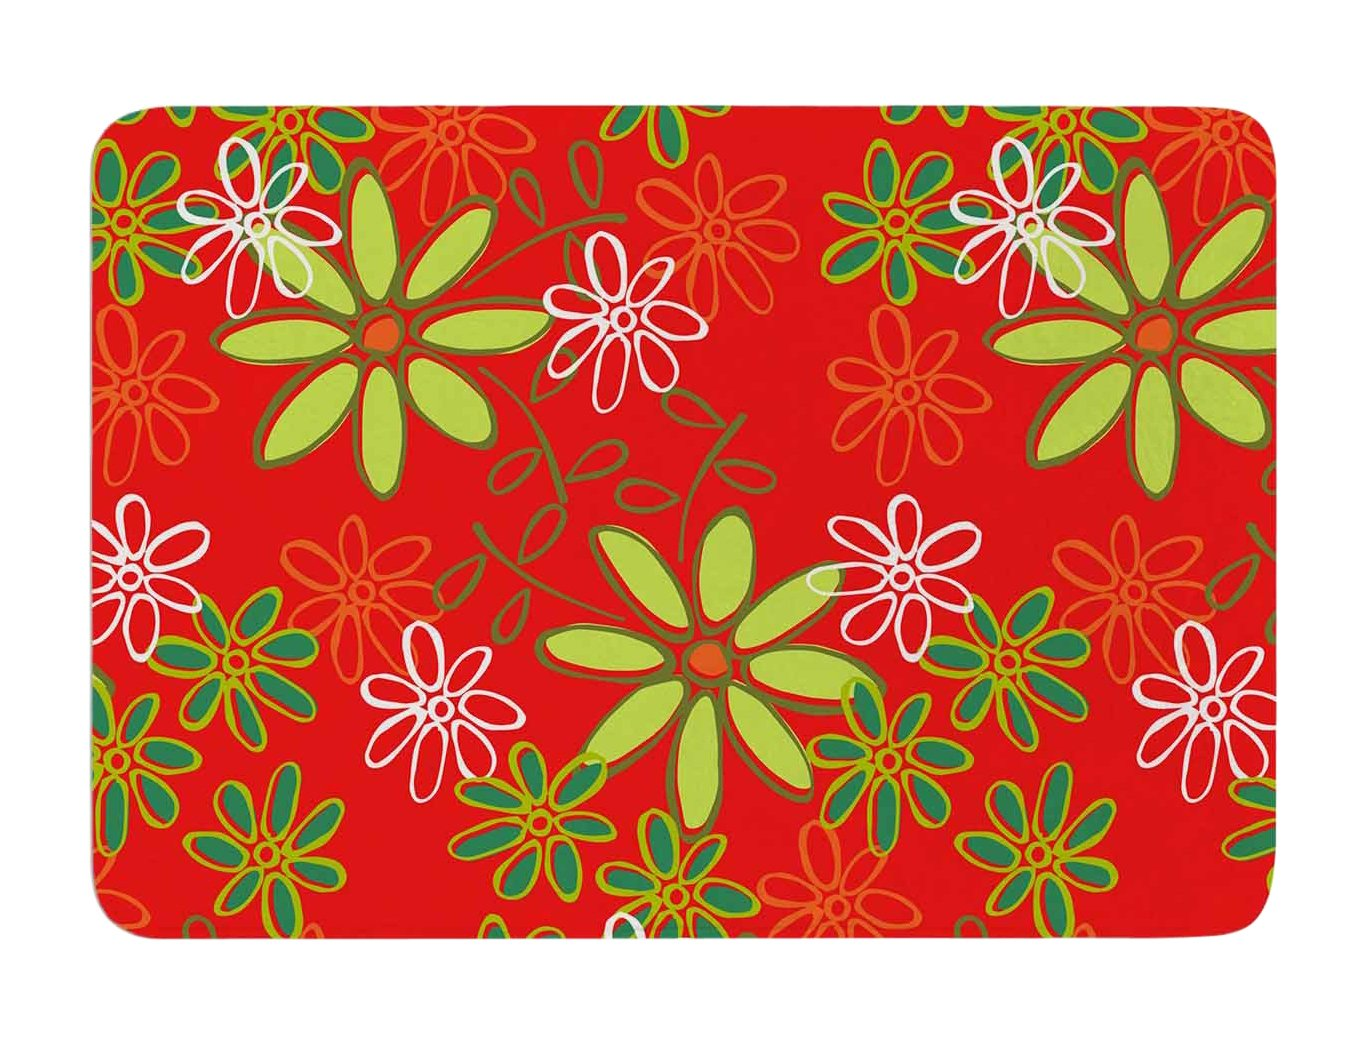 Kess InHouse Holly Helgeson Daisy Mae Red Floral Memory Foam Bath Mat, 17 by 24-Inch, 17' X 24'